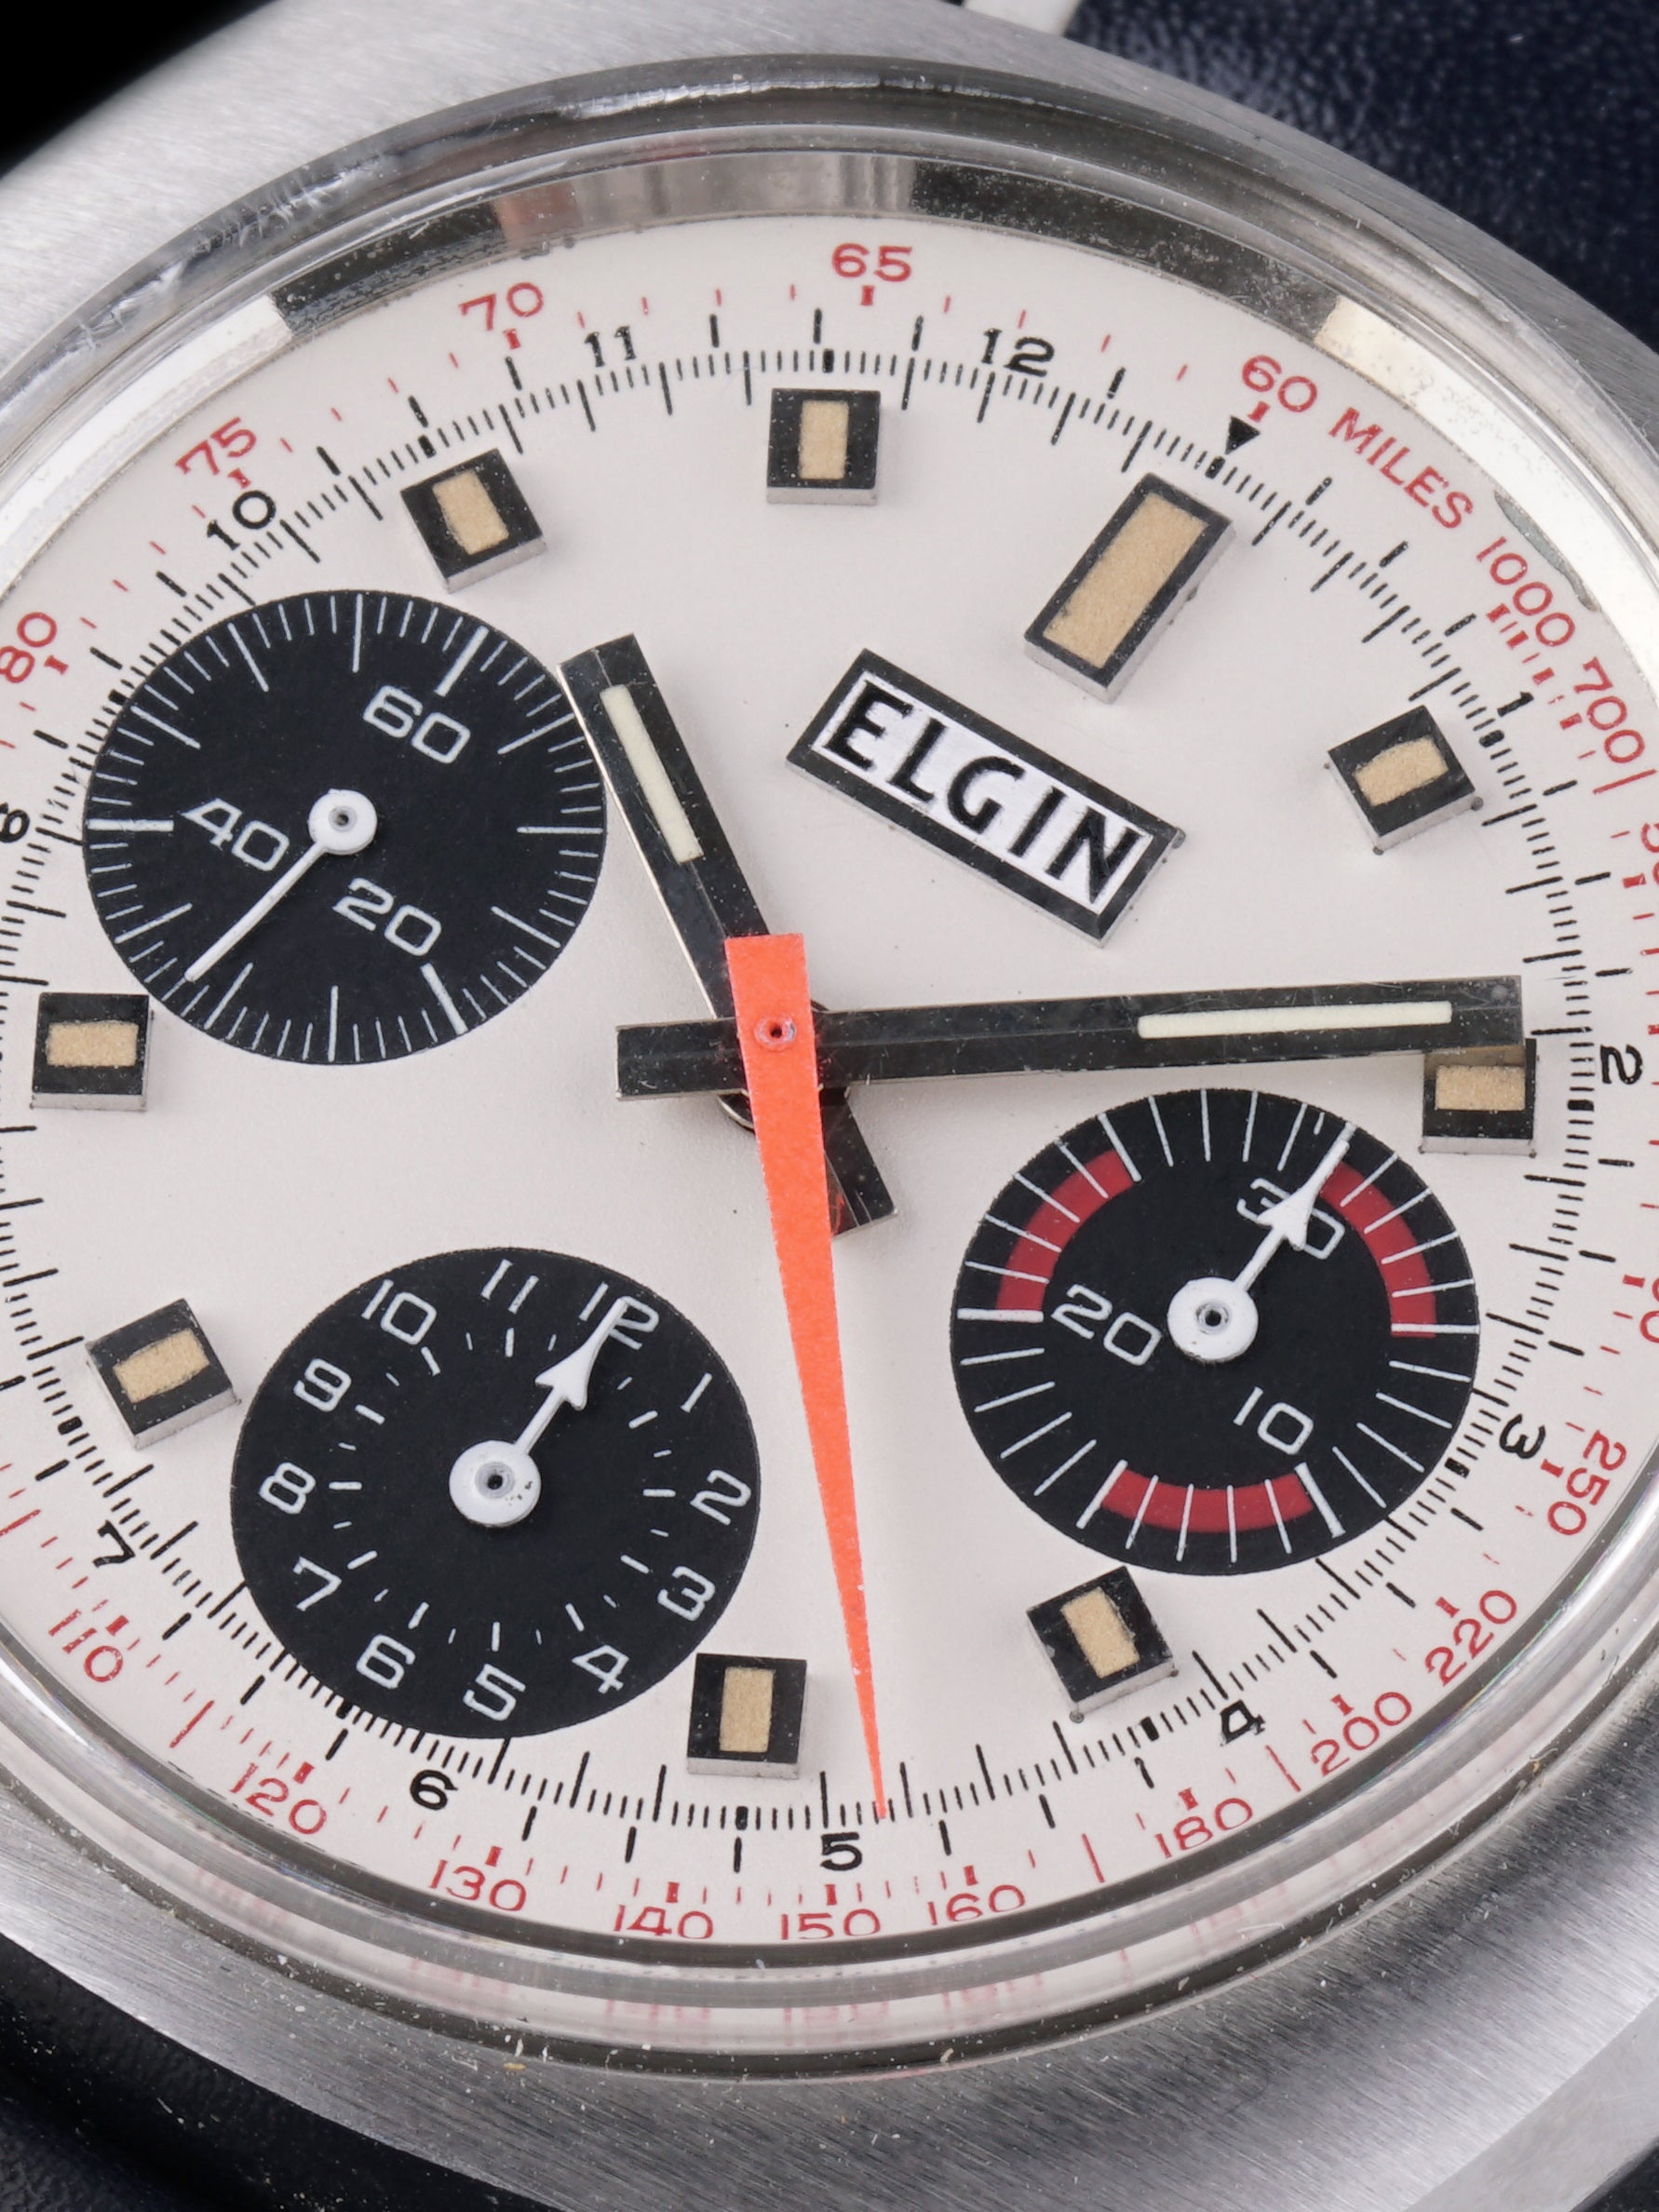 1960s Elgin Chronograph (Ref. 7452) W/ Box and Papers